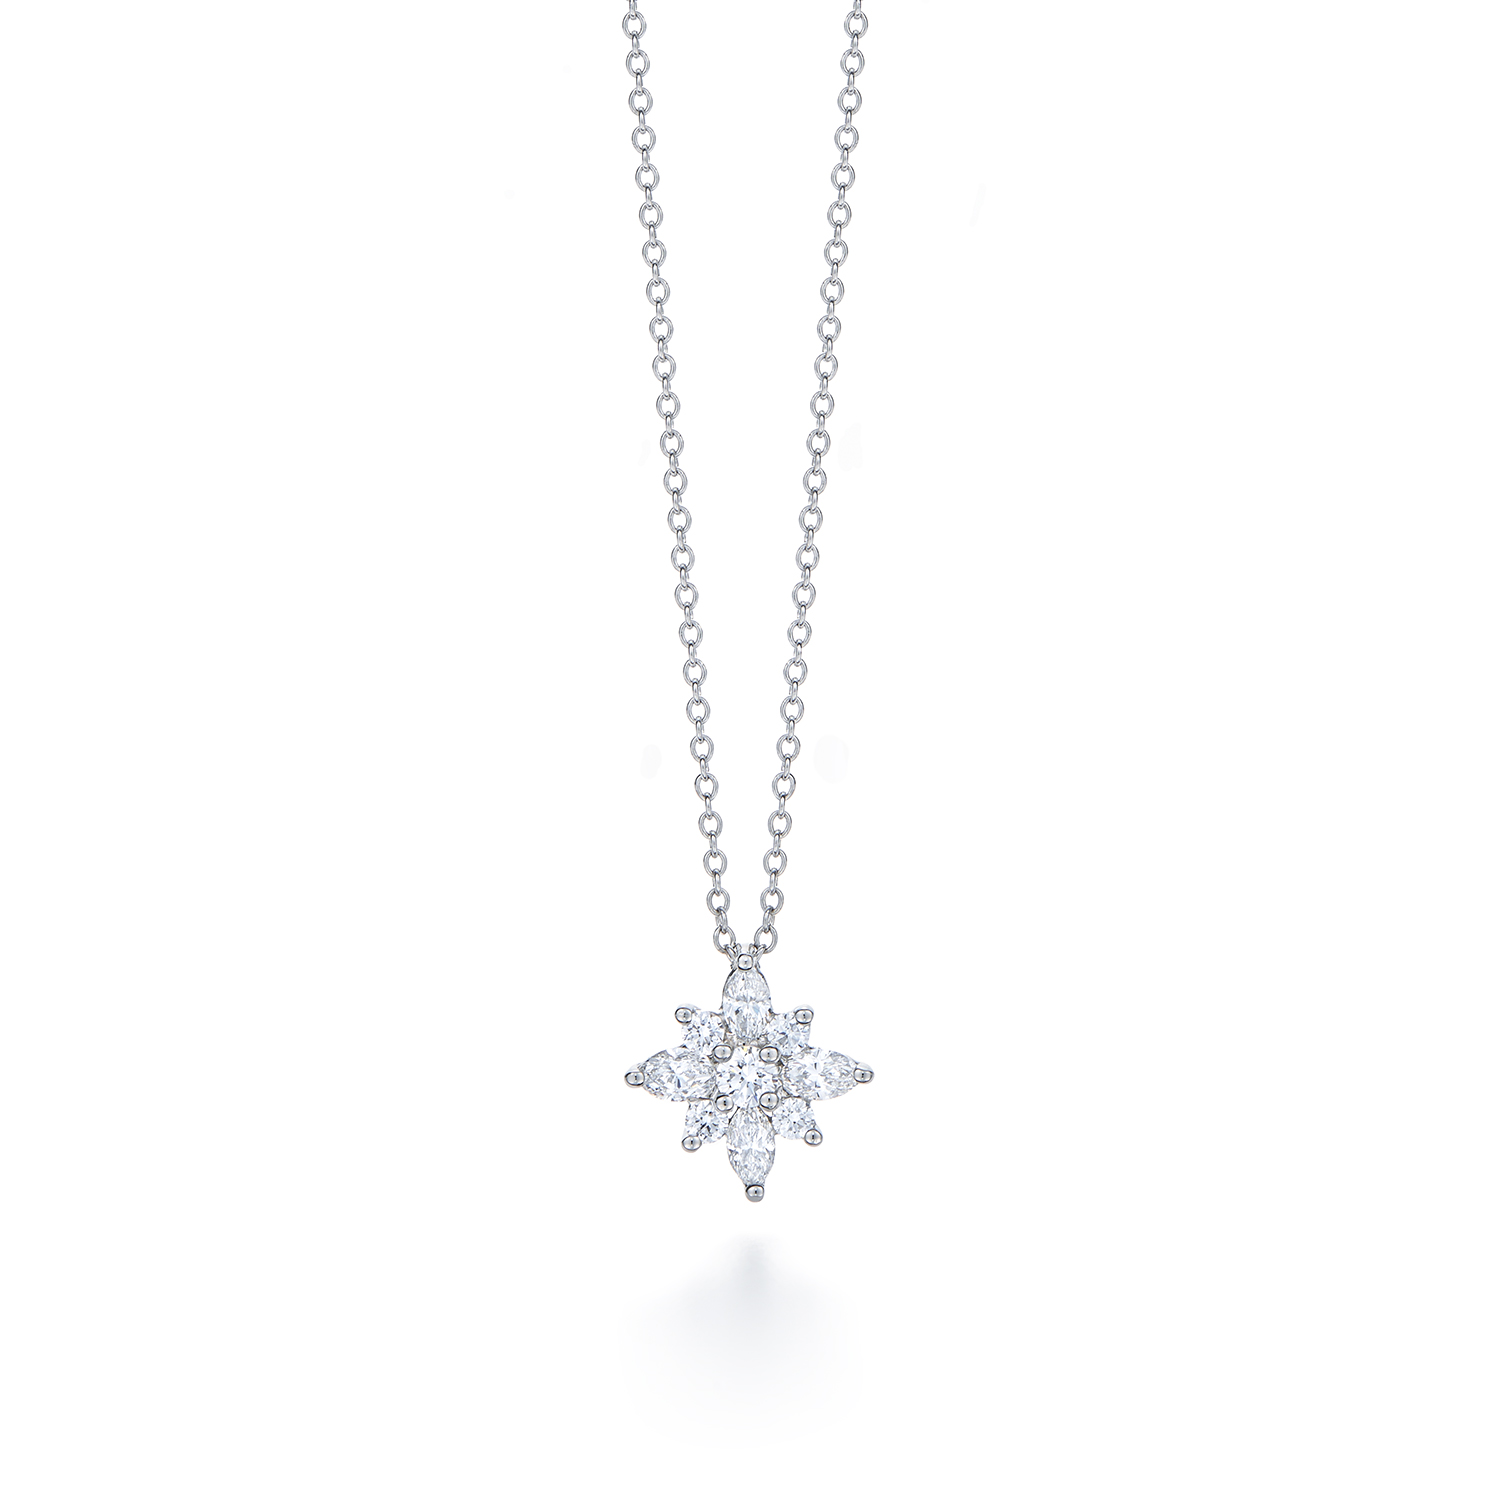 Diamond pendant in kwiat star pendant style 16992 kwiat kwiat star pendant diamond aloadofball Image collections